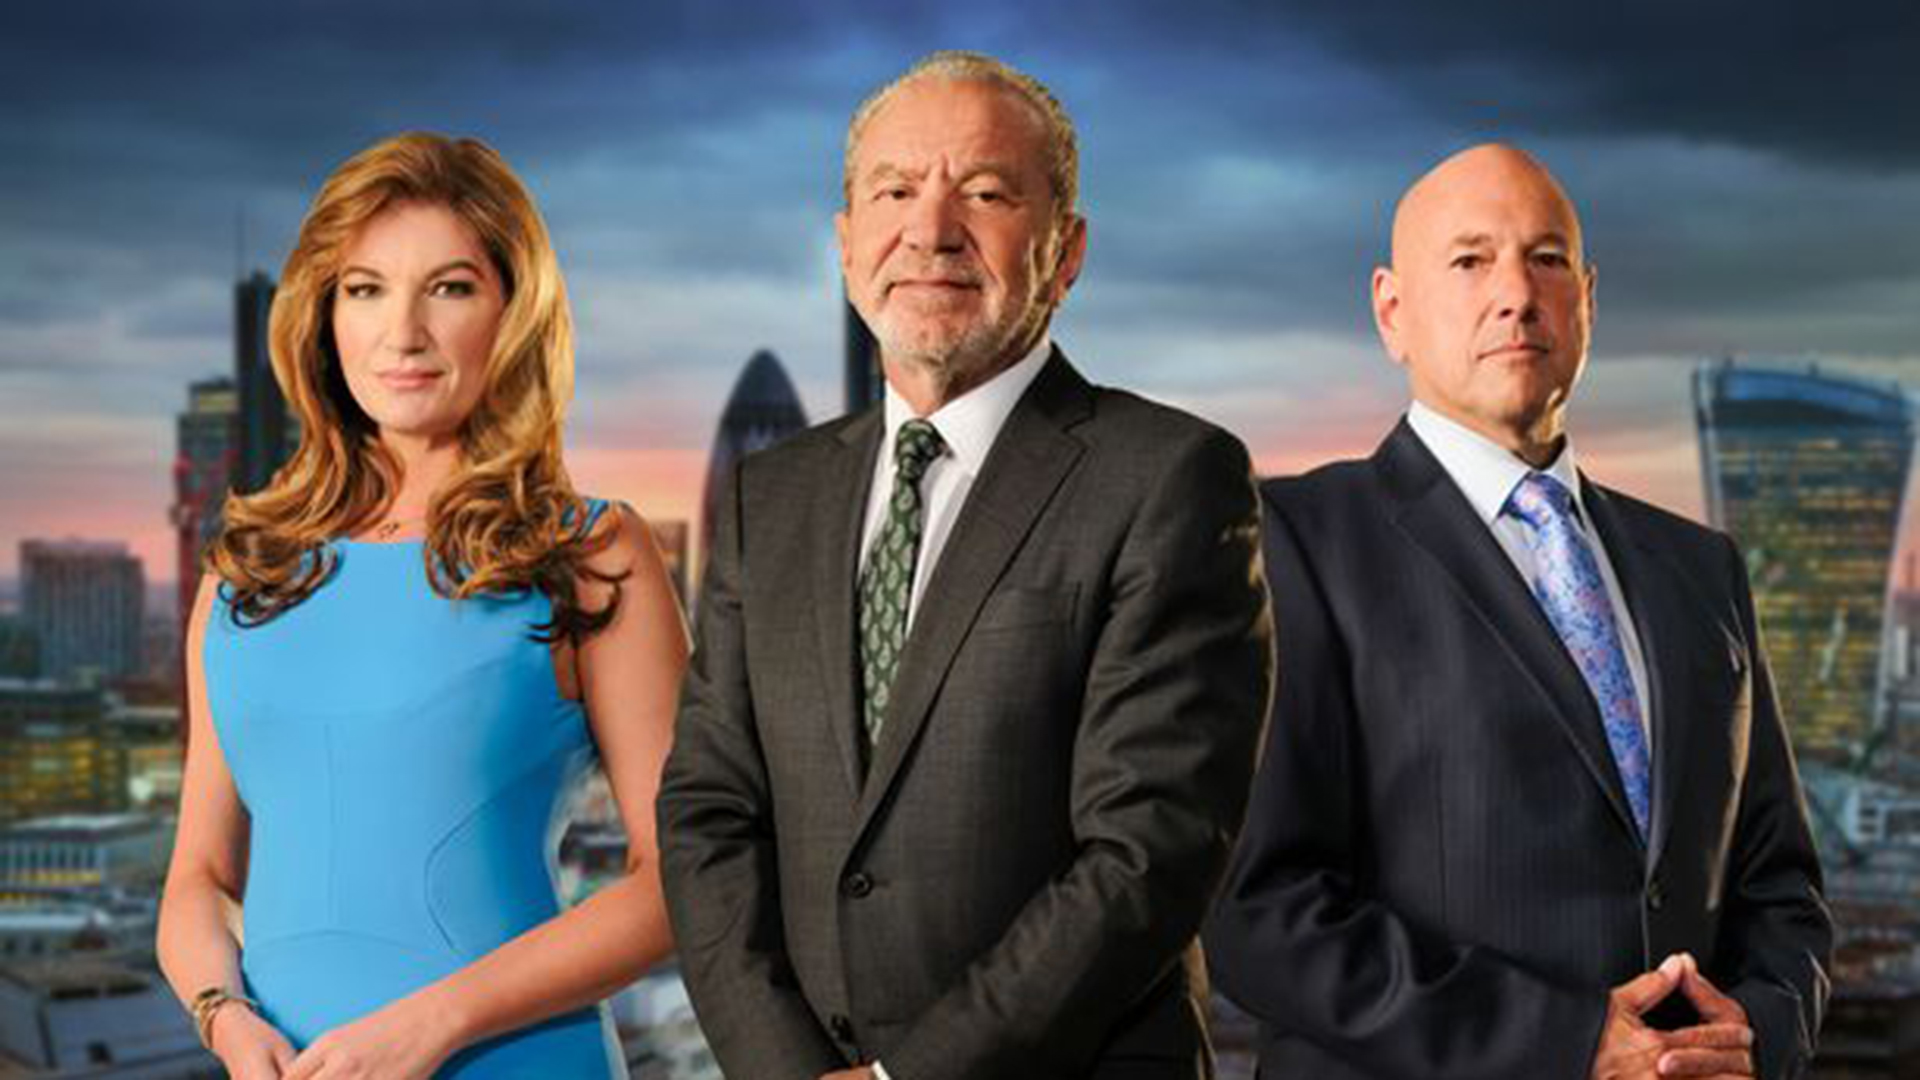 How to watch The Apprentice 2019 online for free: stream from UK or abroad